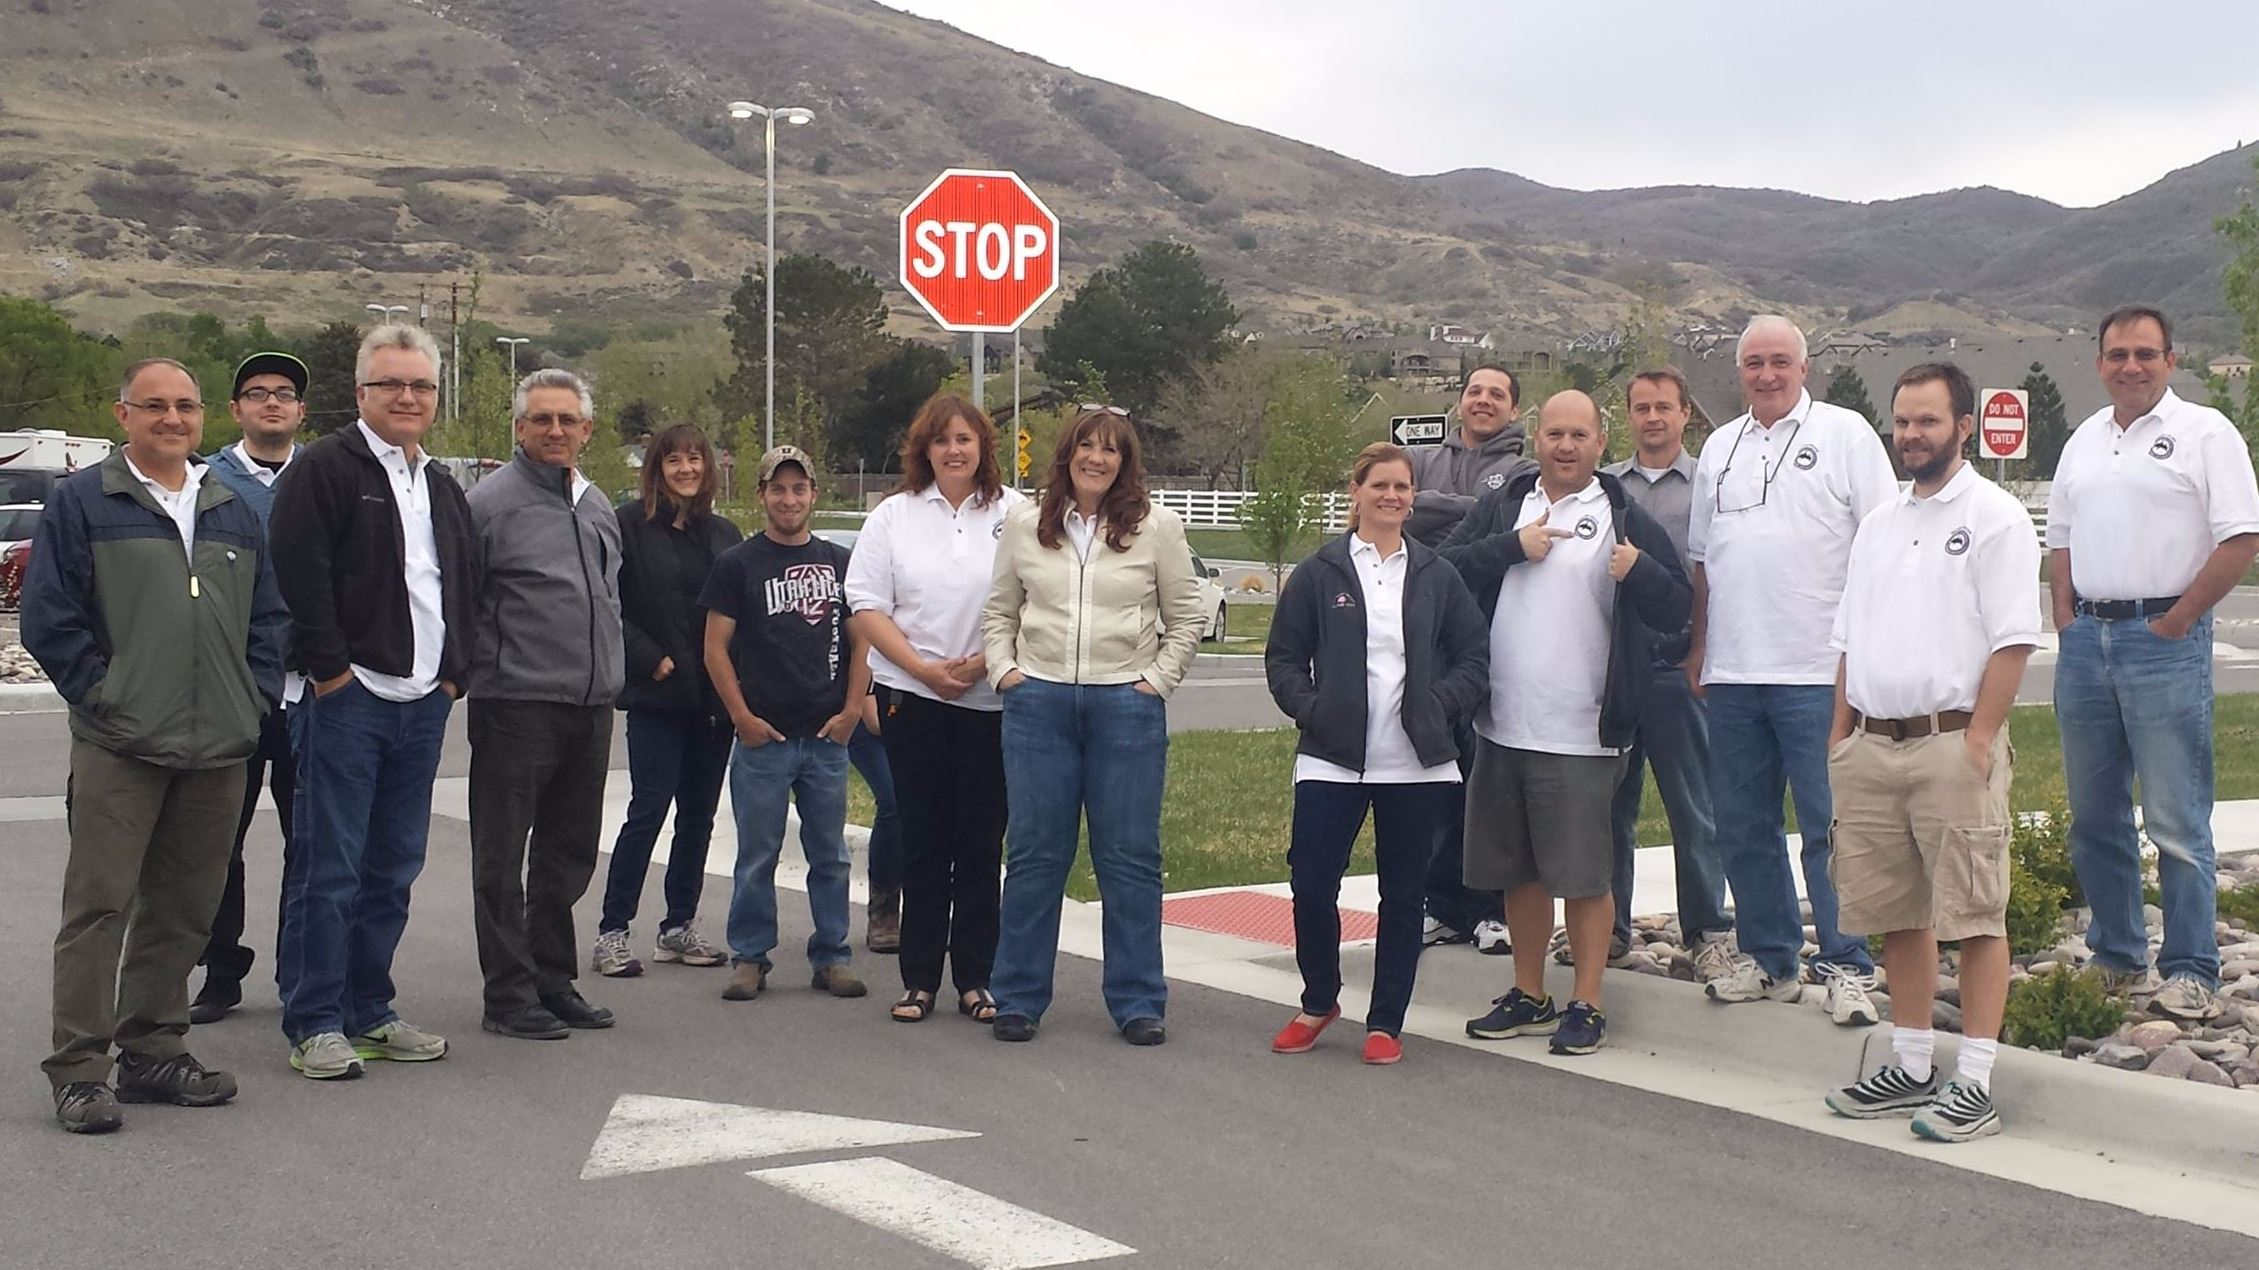 Group Photo of 2016 citizens academy participants standing in an intersection